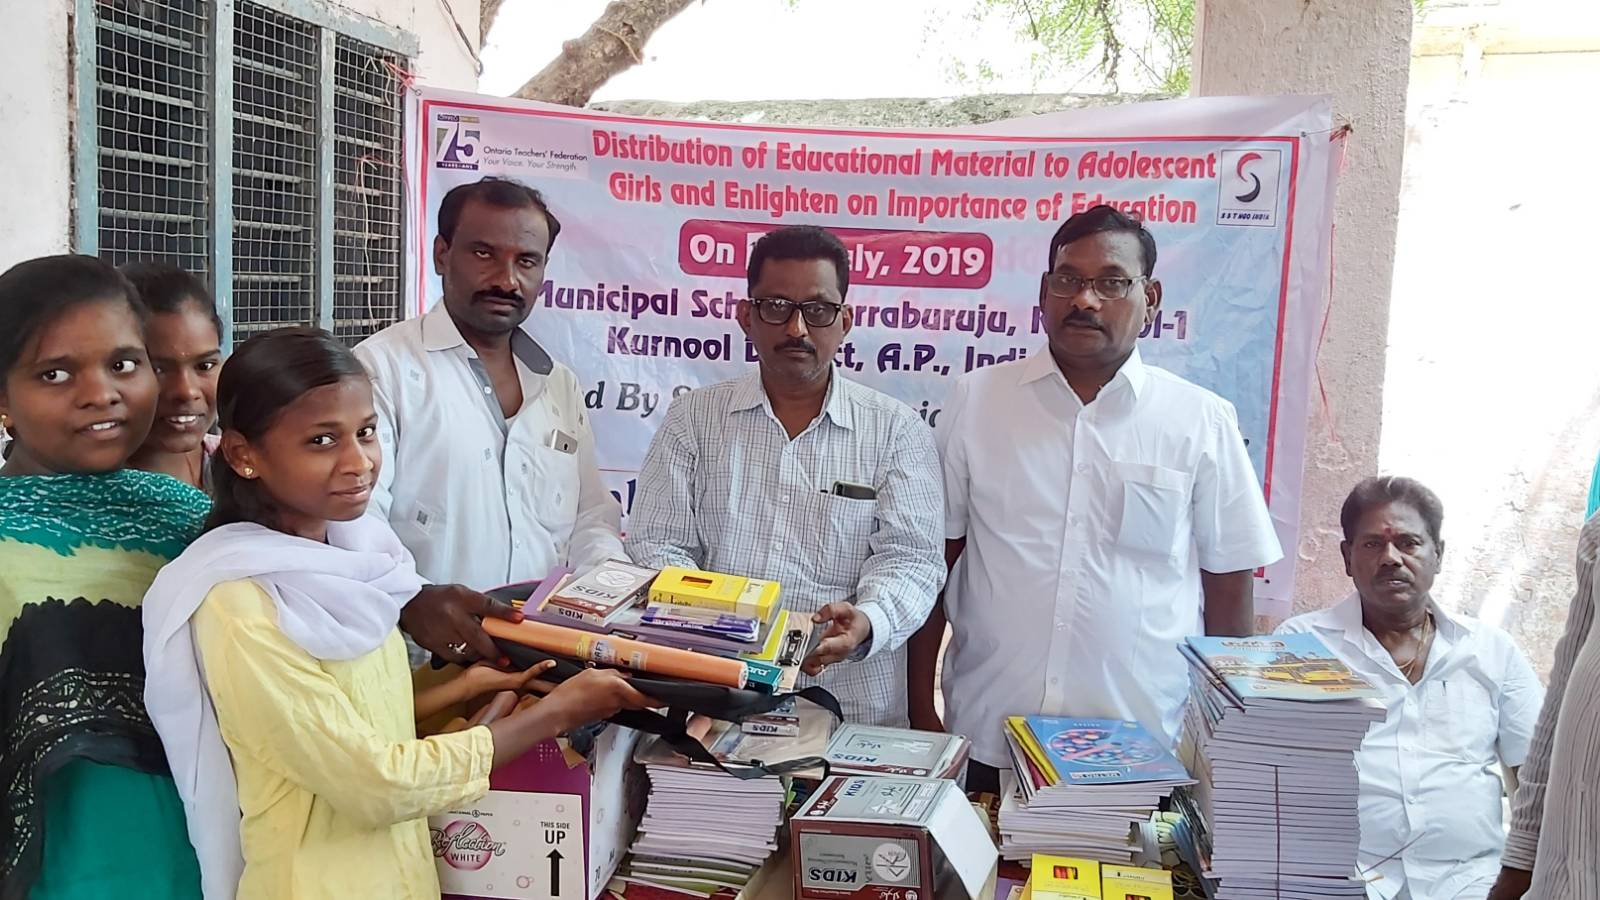 Distribution of Education Materials to Adolescent girls